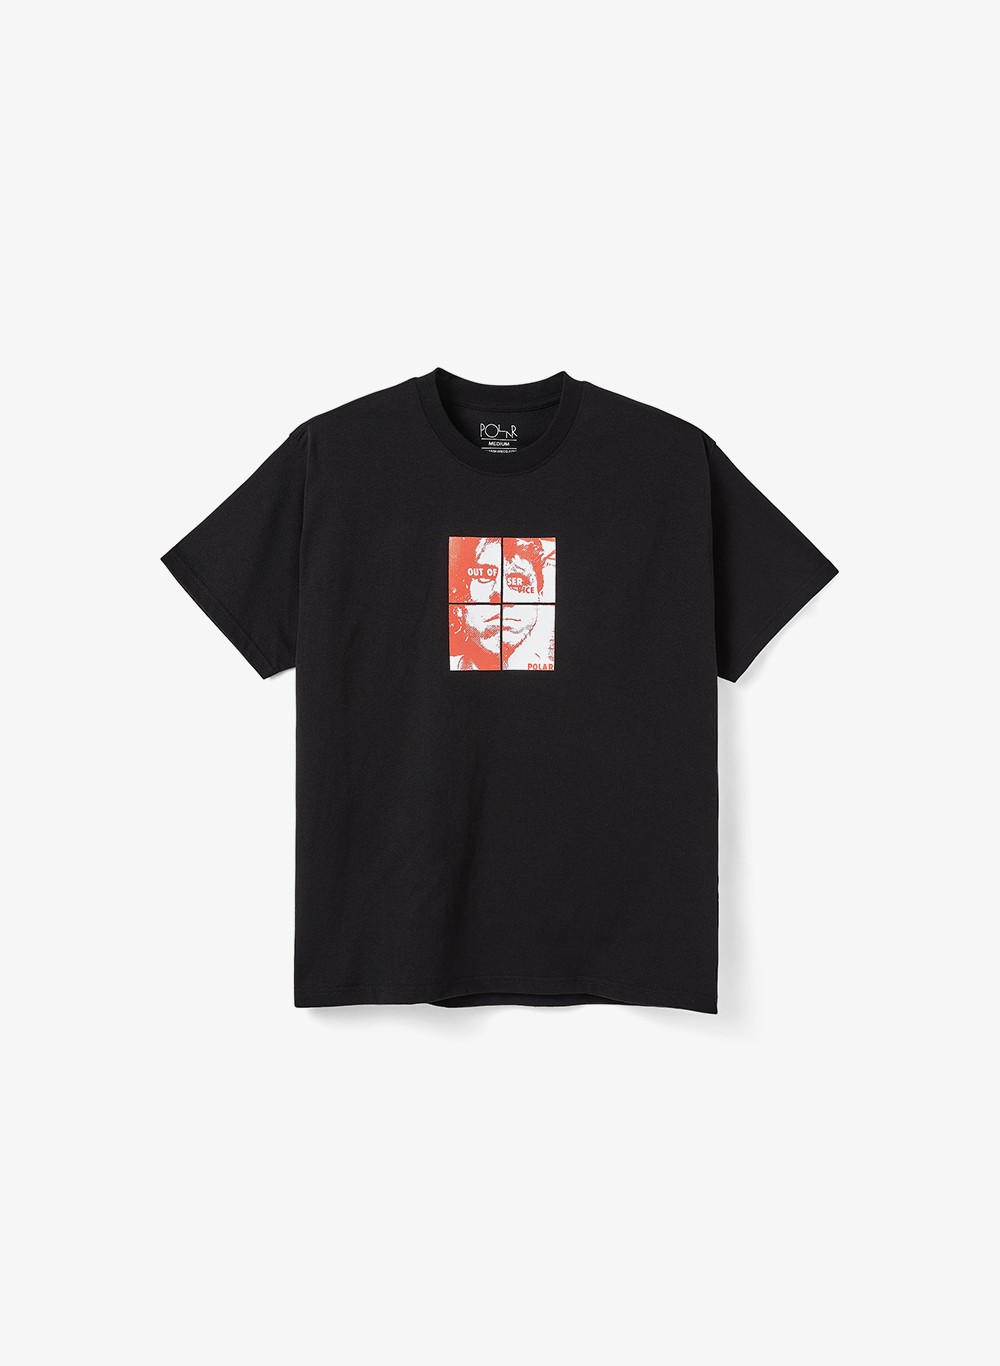 Polar - Out Of Service Tee...